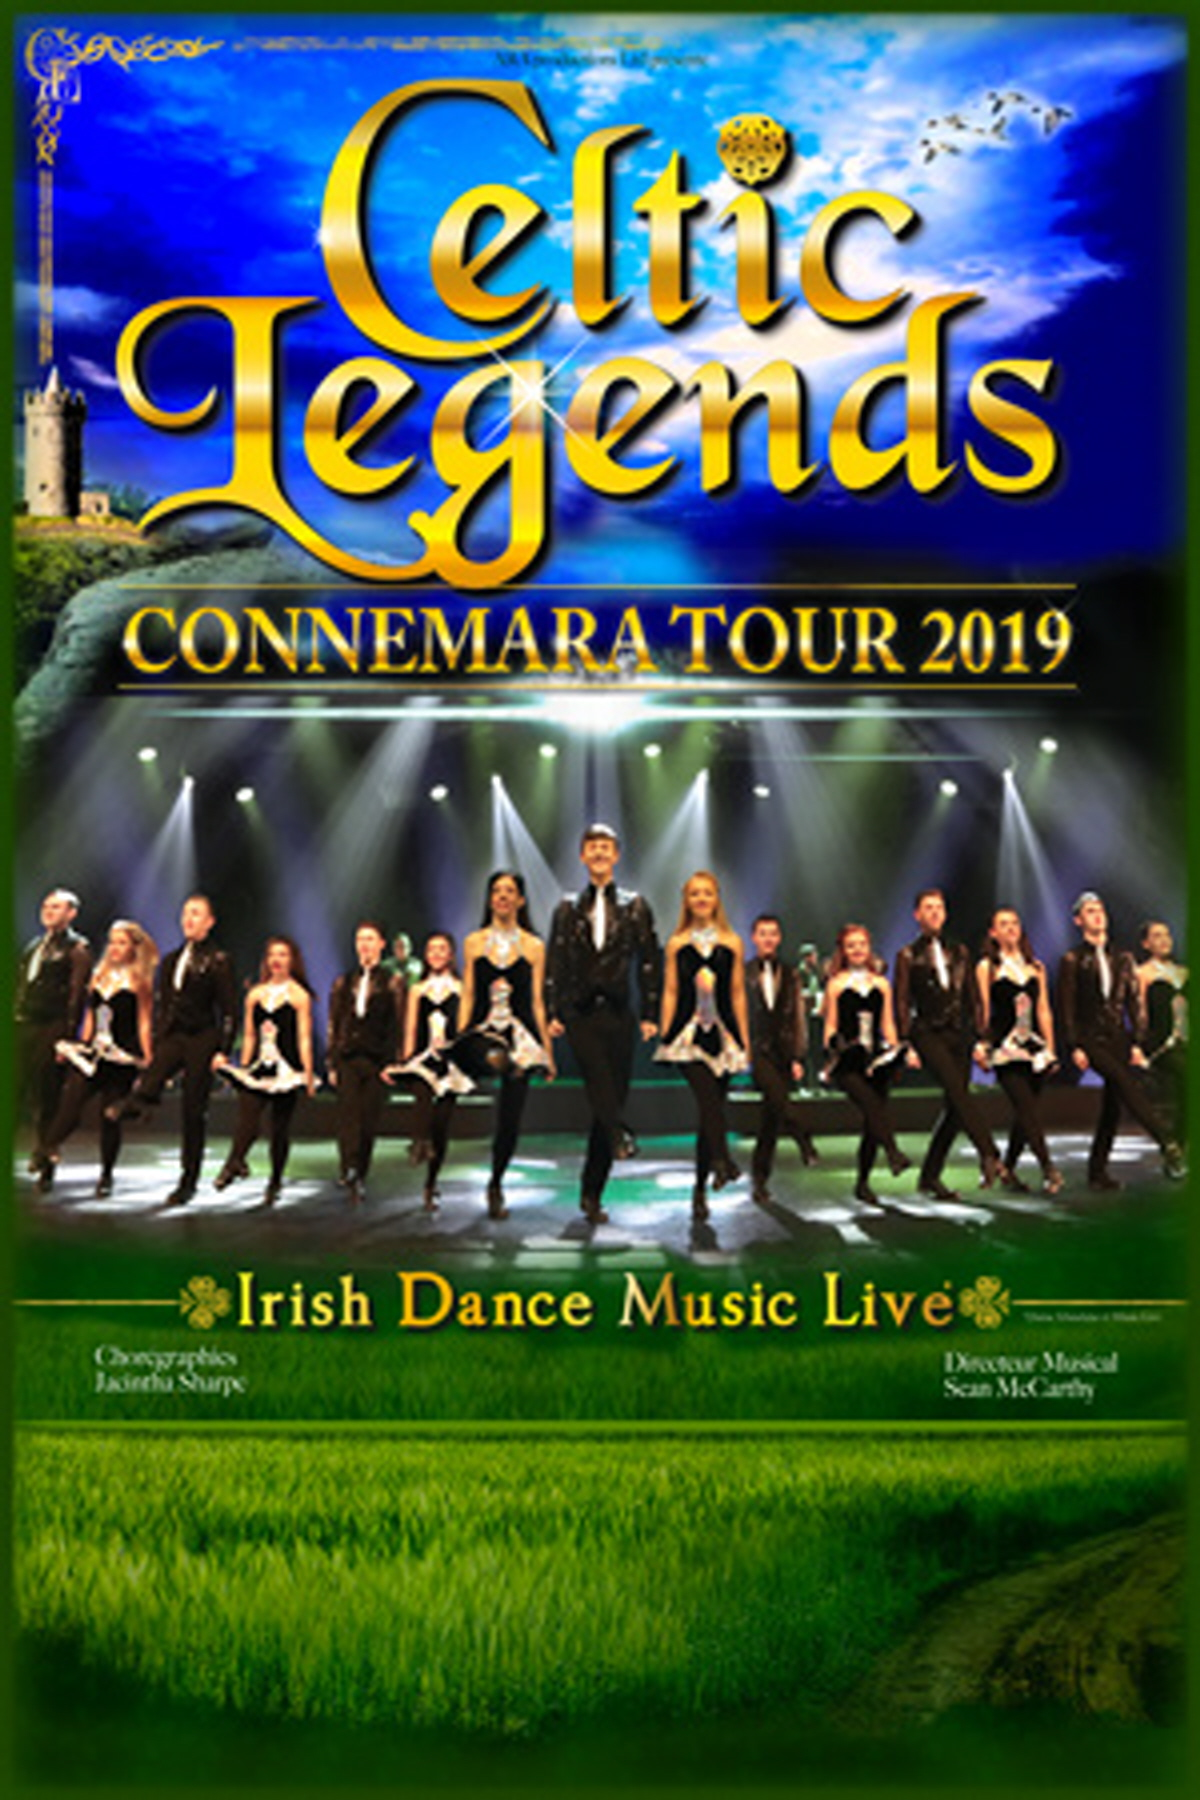 illustration celtic legends connemara tour 2019 1 1511877604